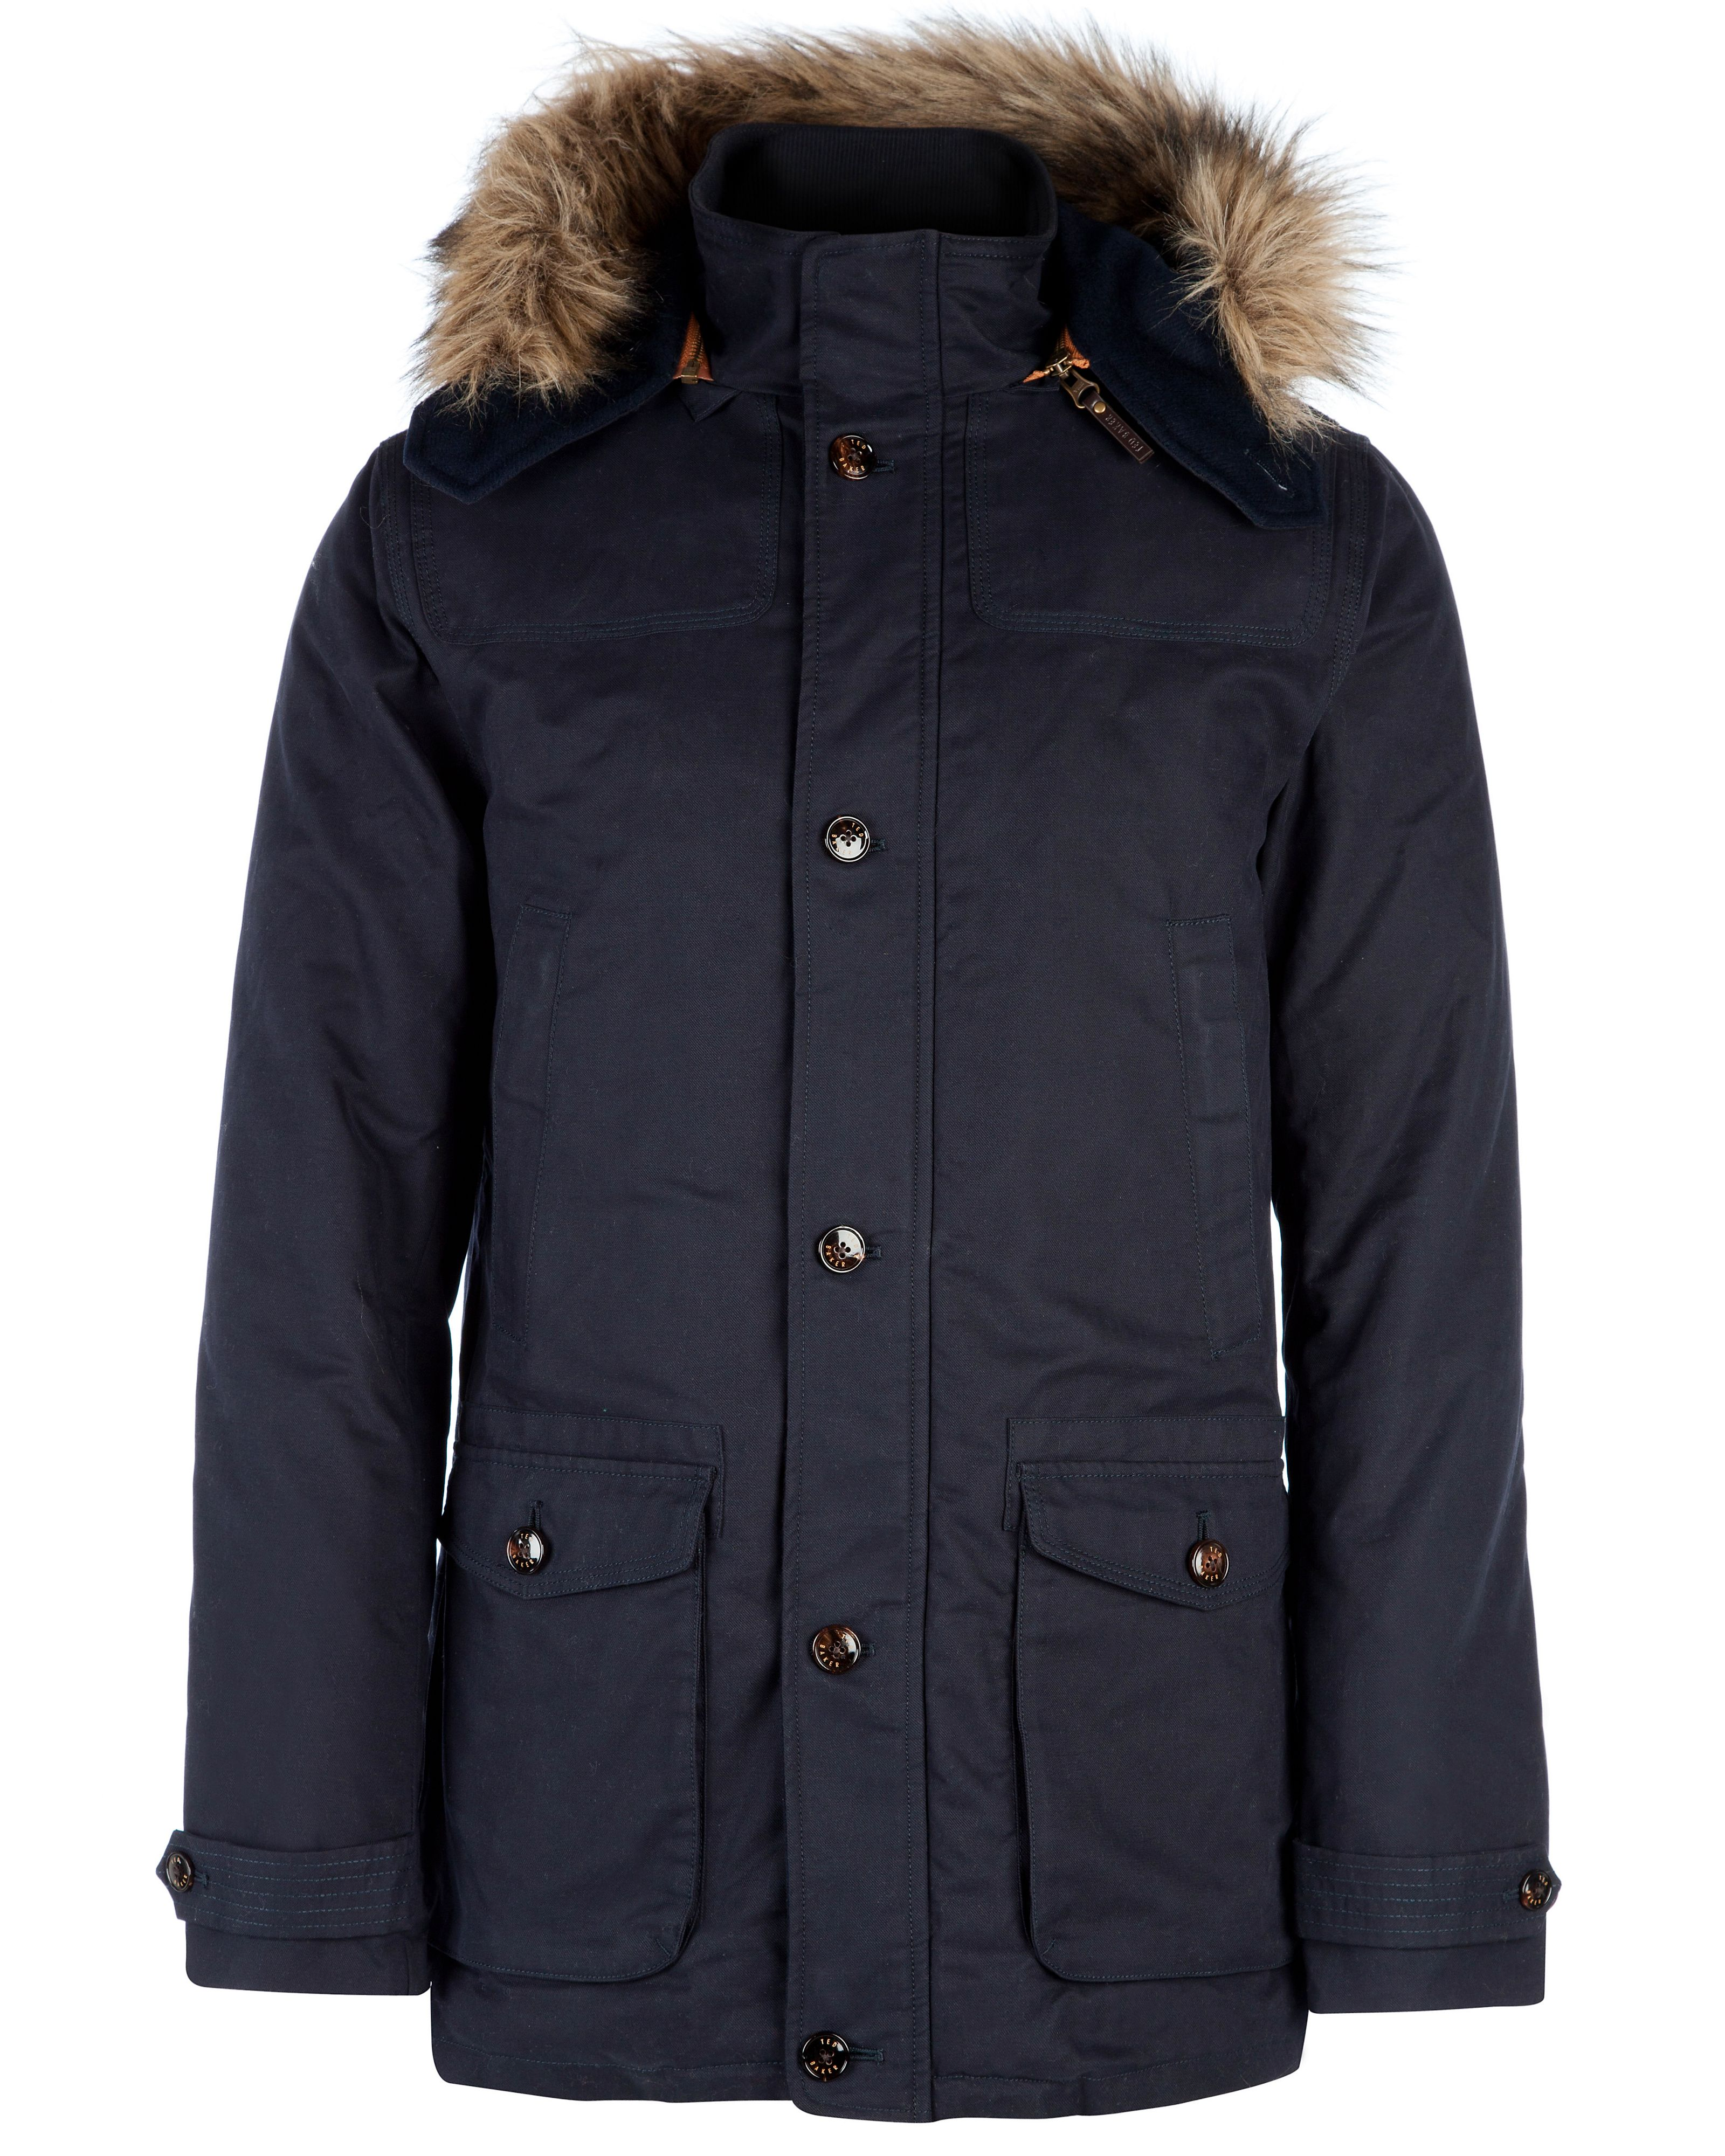 Wildery hooded parka